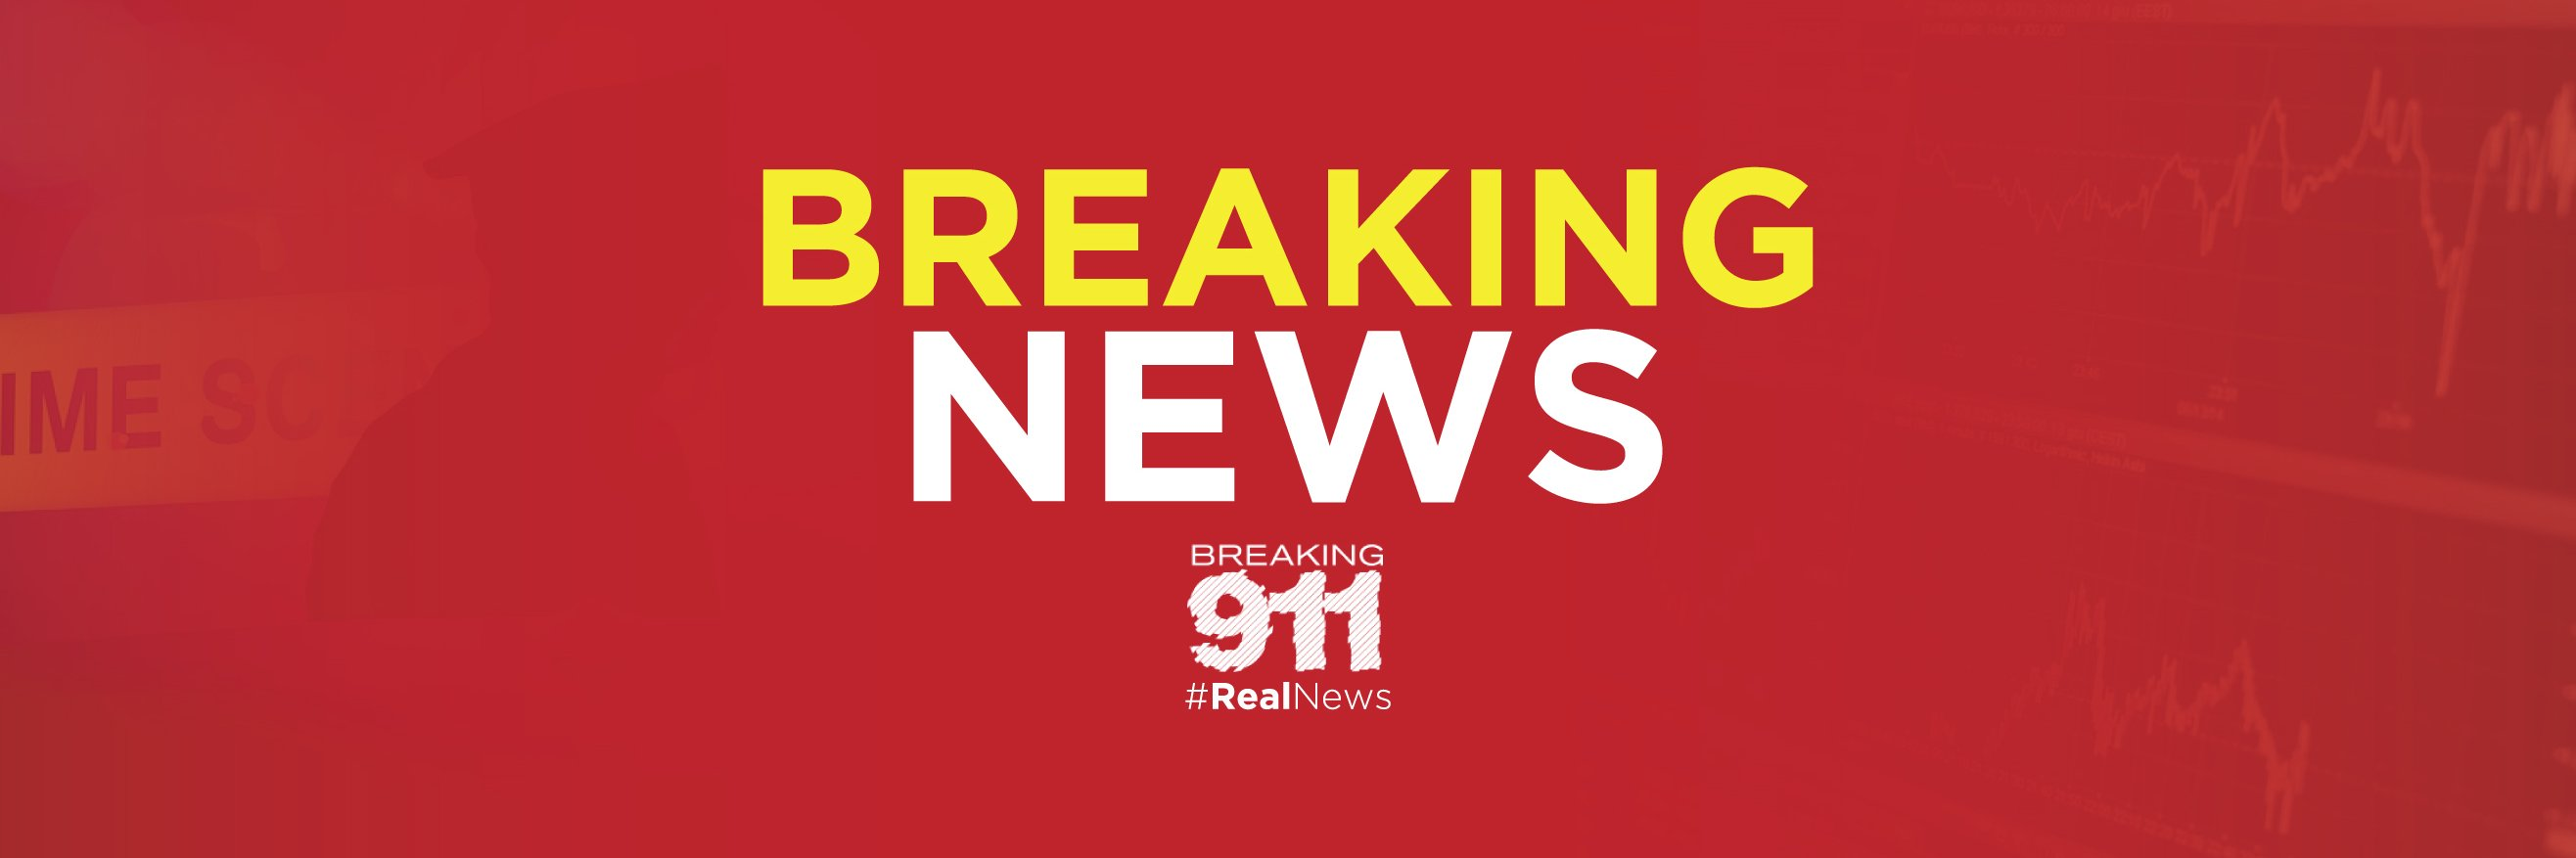 JUST IN: Seaside, Calif. teacher fires gun in classroom, no injuries. The teacher is a reserve police officer and… https://t.co/MDvhEP0wSI